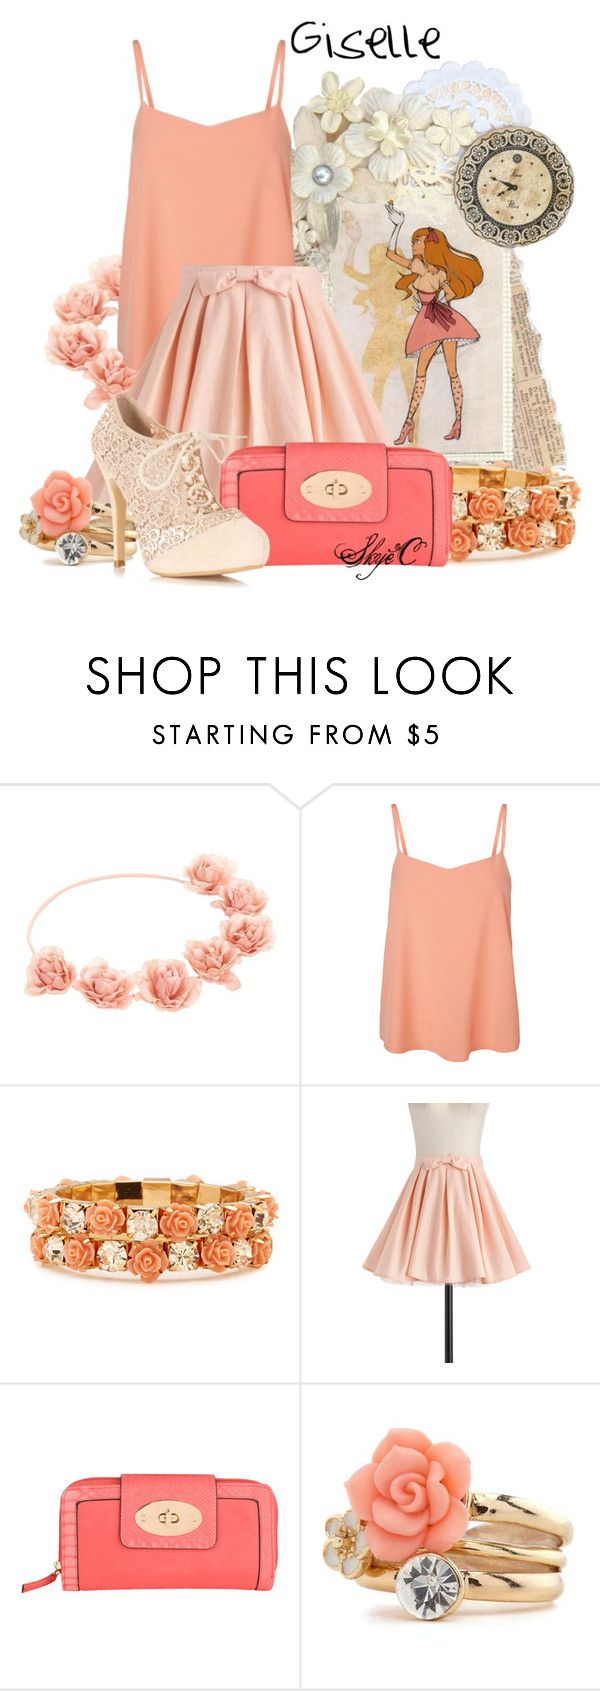 """""""Giselle - Disney's Enchanted"""" by rubytyra ❤ liked on Polyvore featuring Disney, Vero Moda, Forever 21, Cutie, Jane Norman, Charlotte Russe, Miss Selfridge, disney, disneybound and enchanted"""